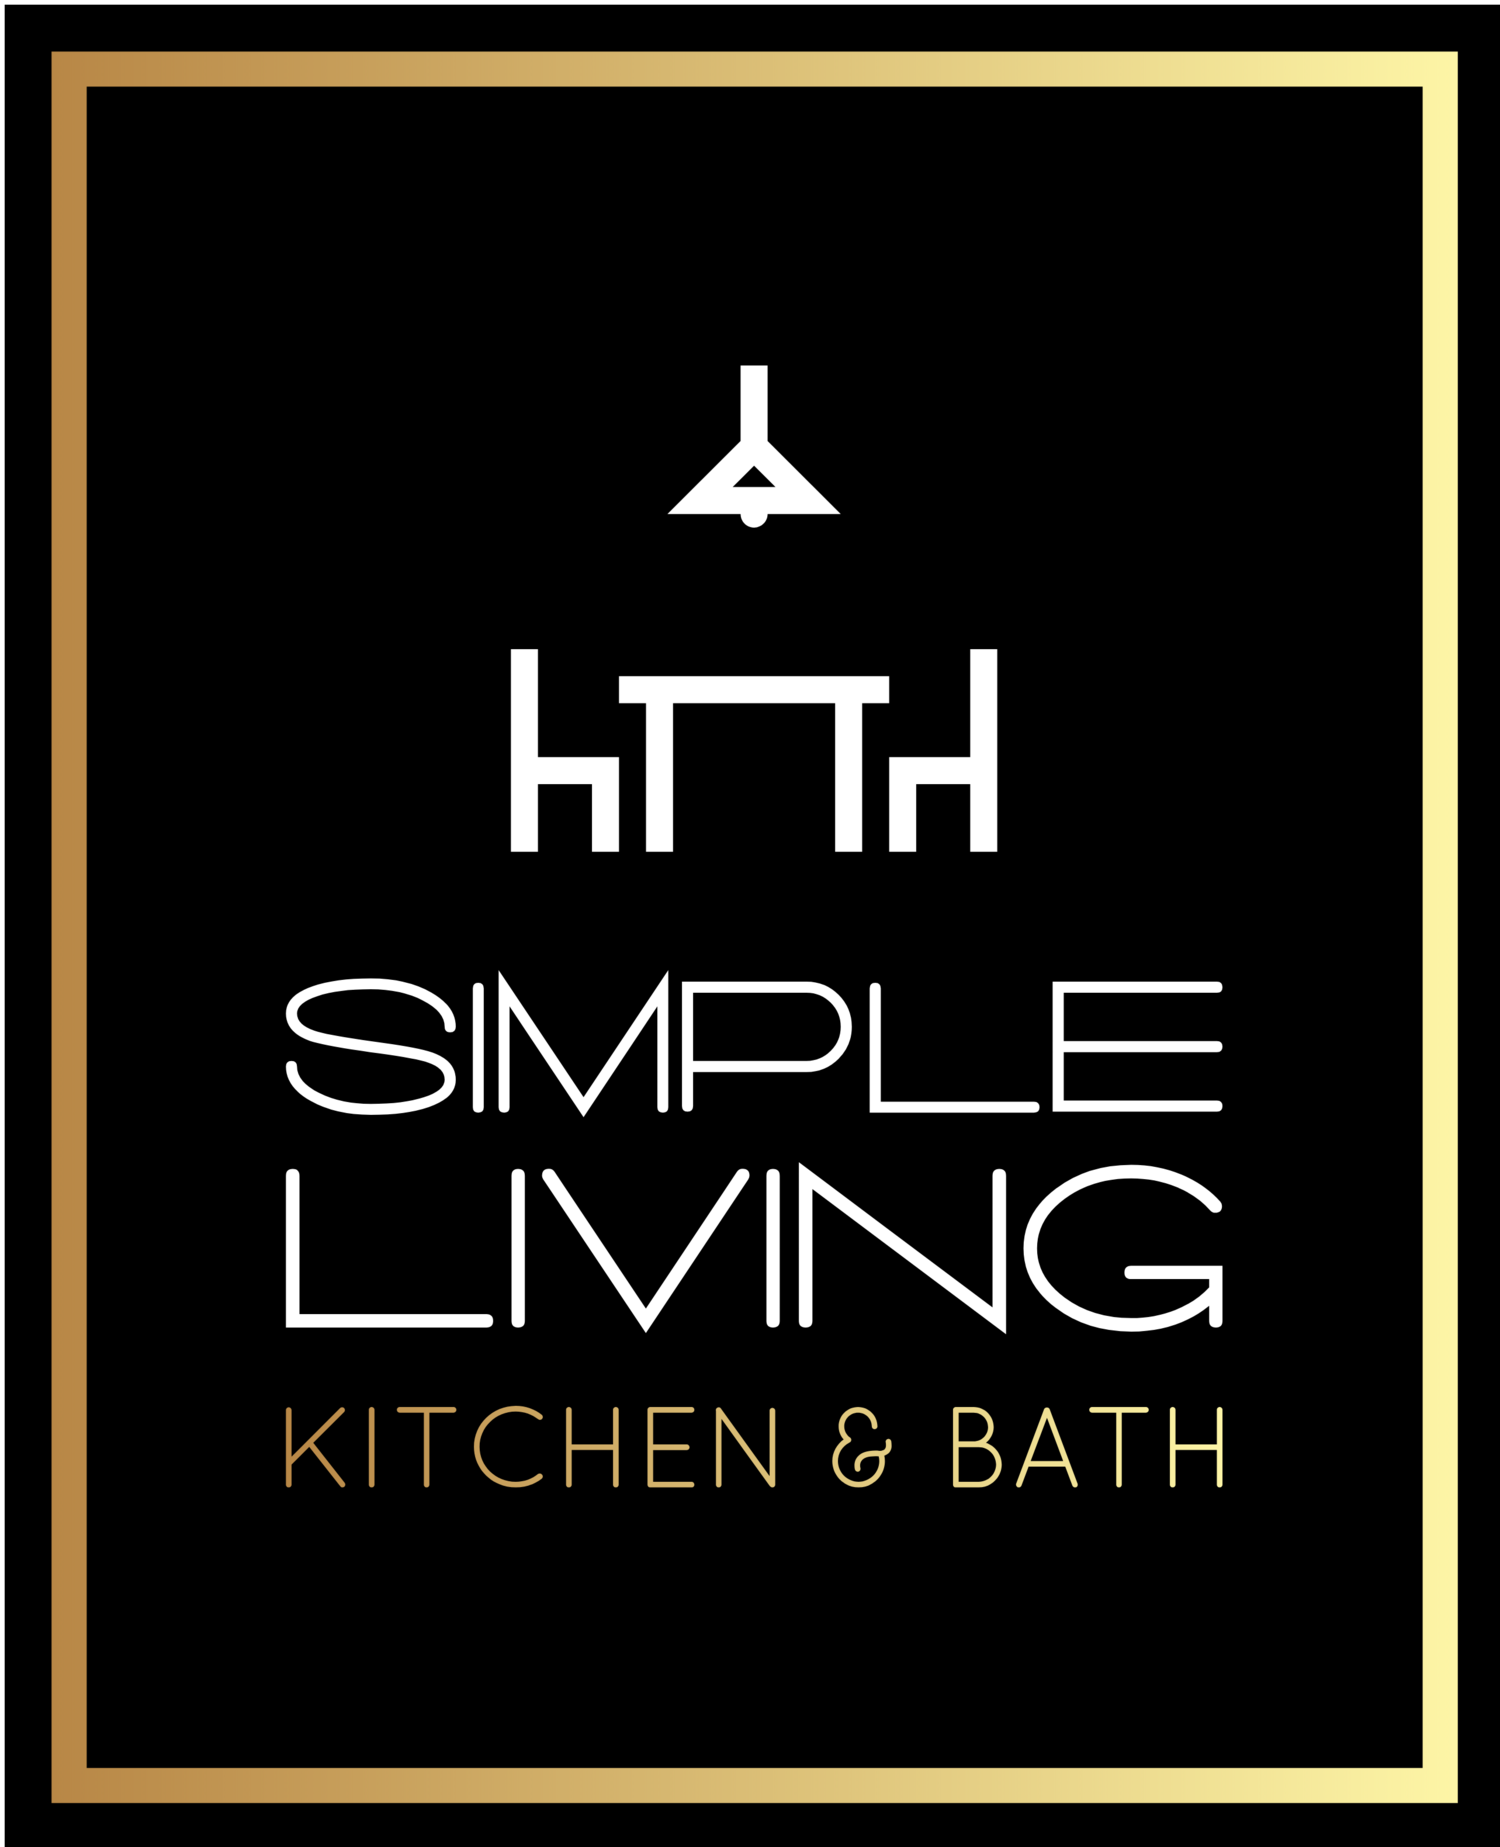 Simple Living Kitchen & Bath